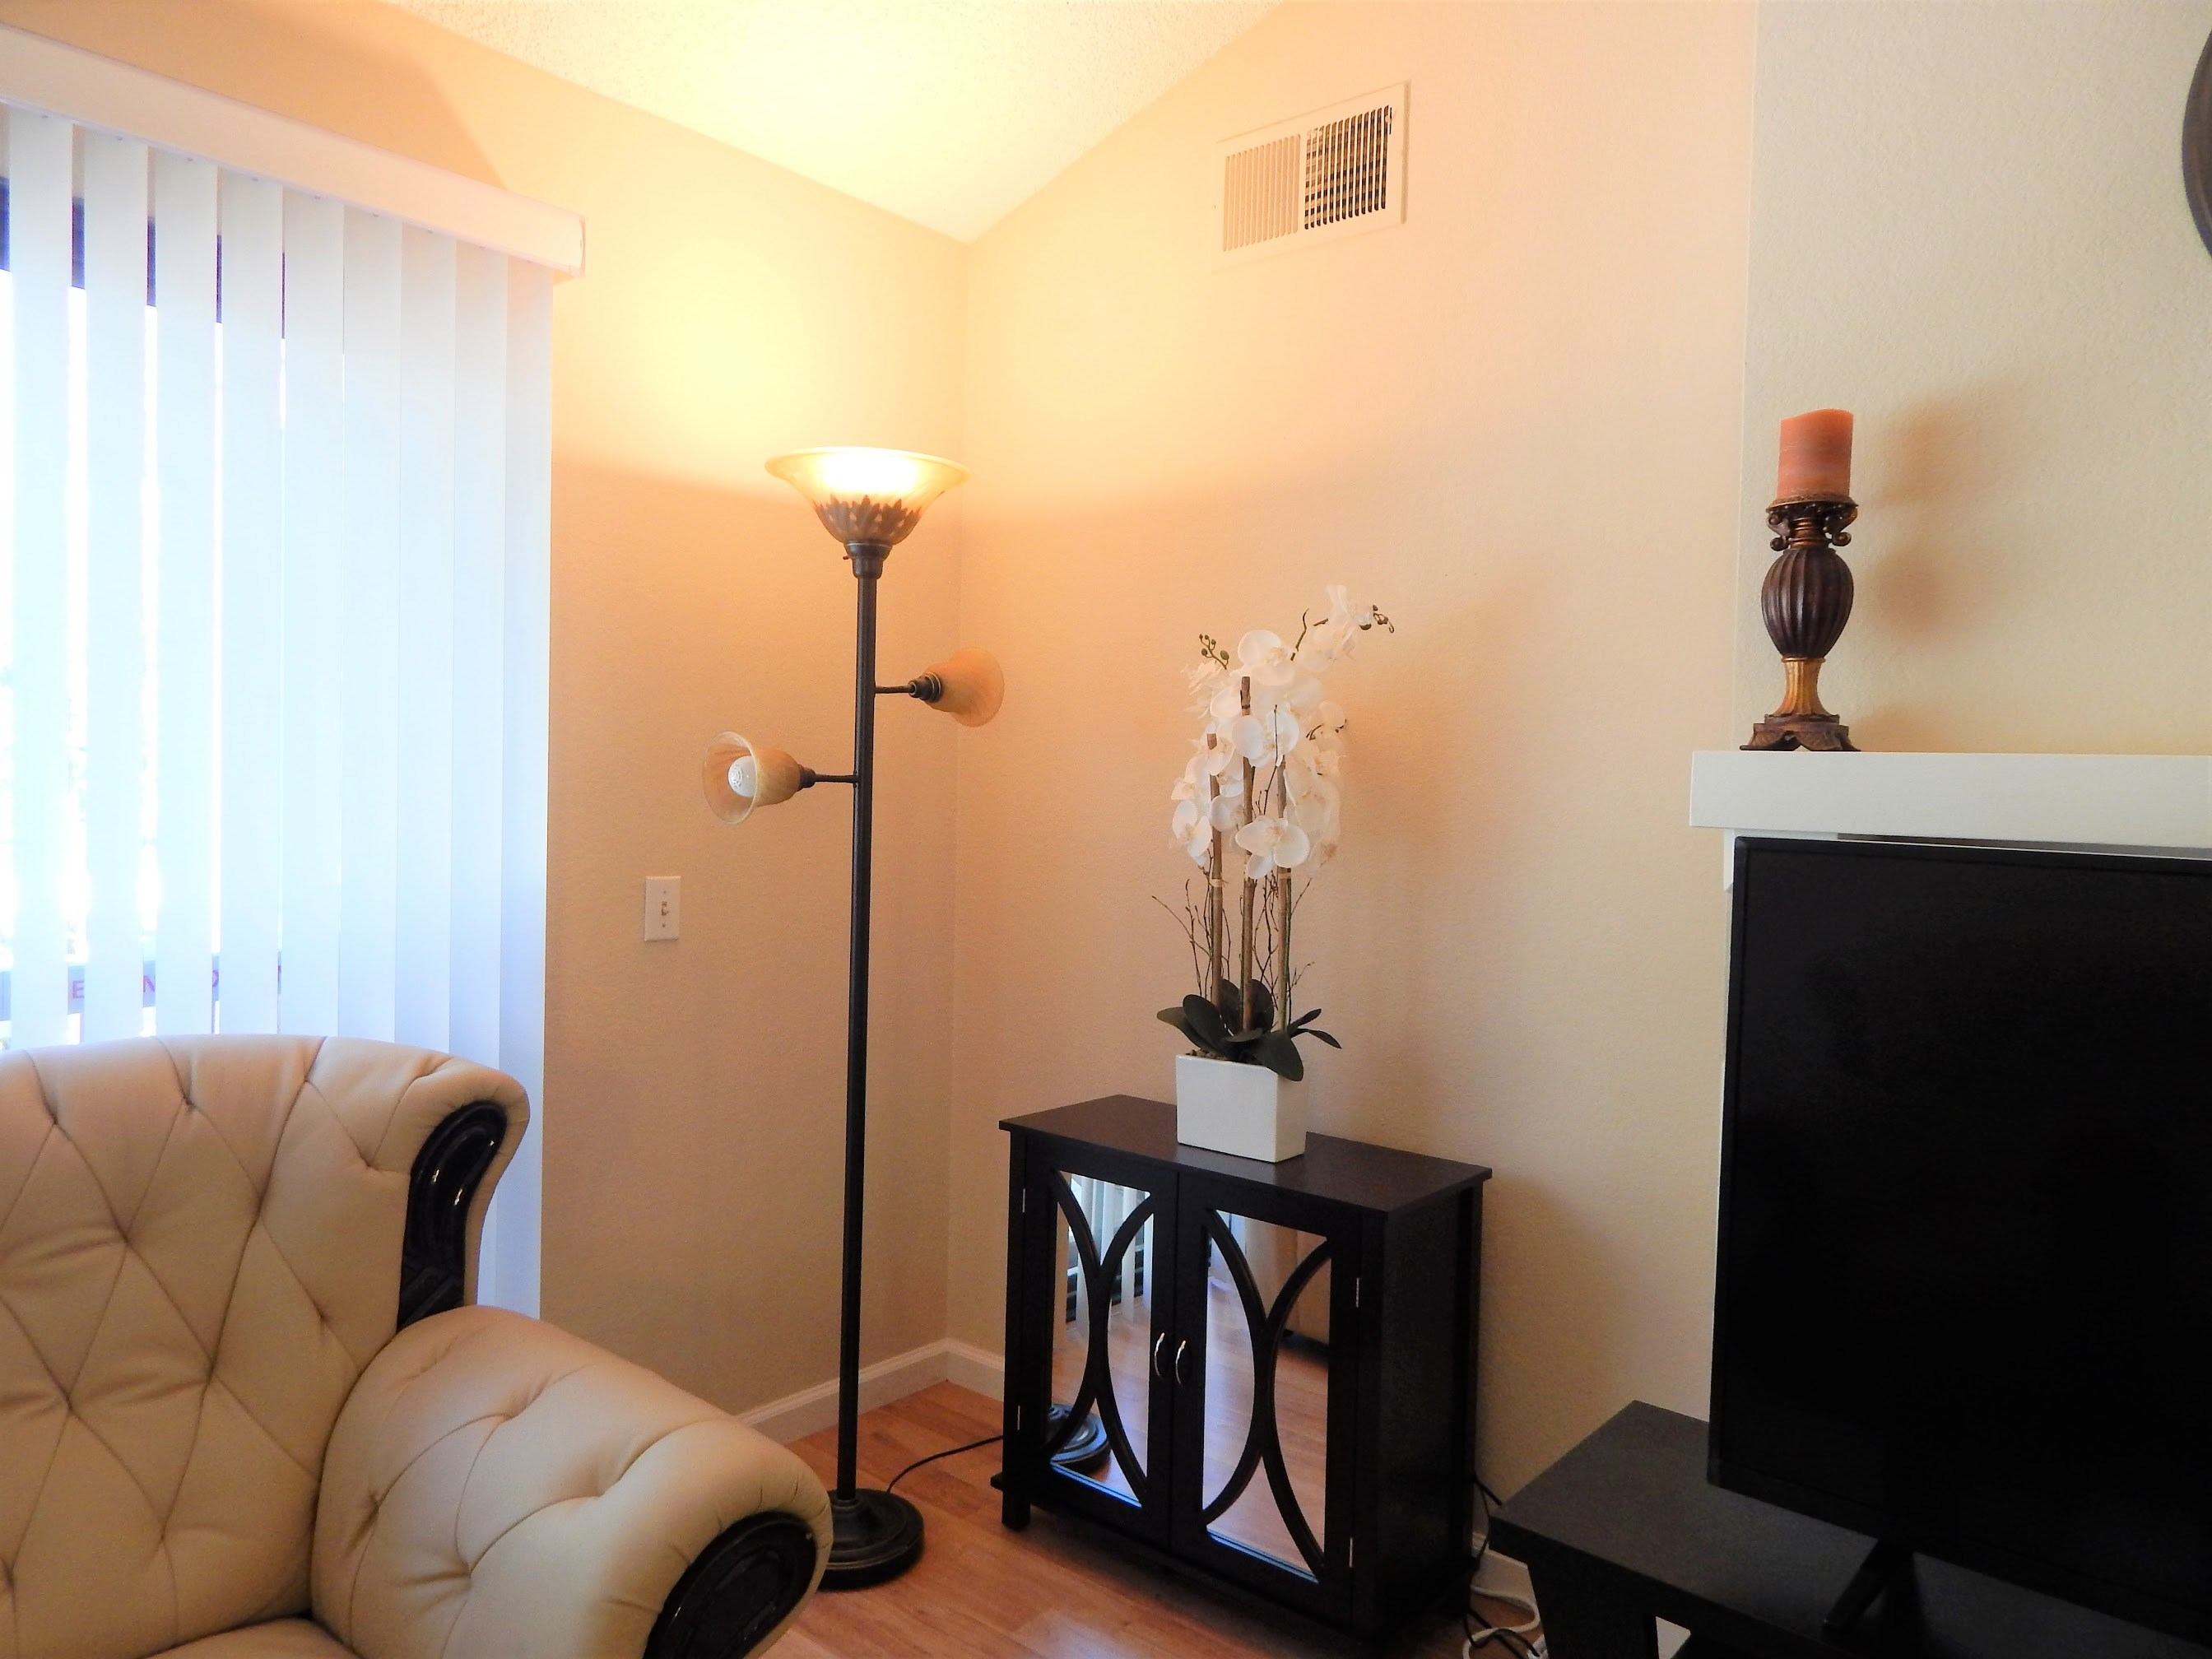 Apartment/Flats for Rent in Bay Area, 1BHK, 2BHK, 3BHK, 4BHK